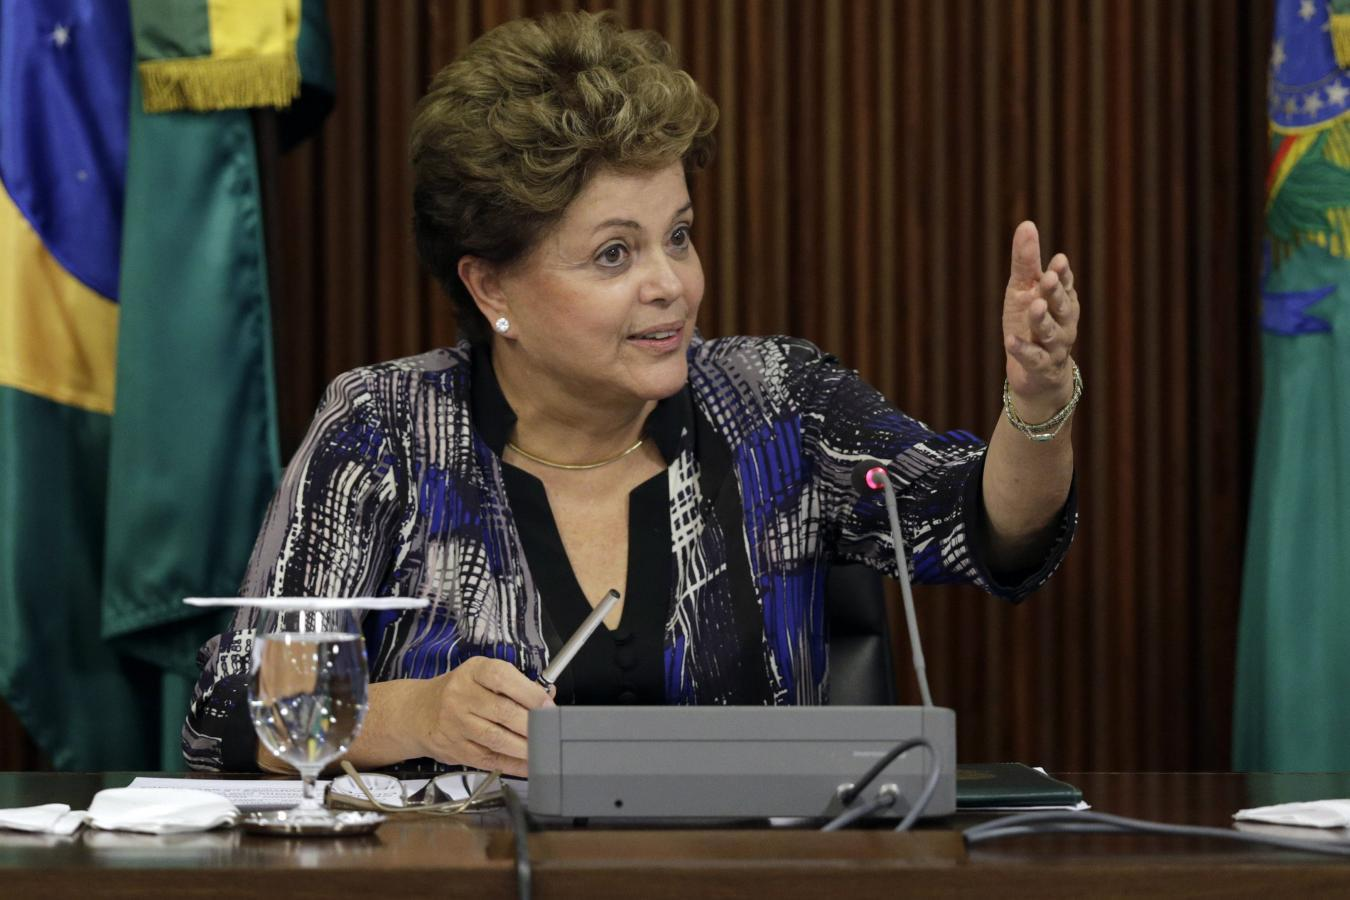 Brazil's Rousseff resists pressure to prosecute dictatorship crimes